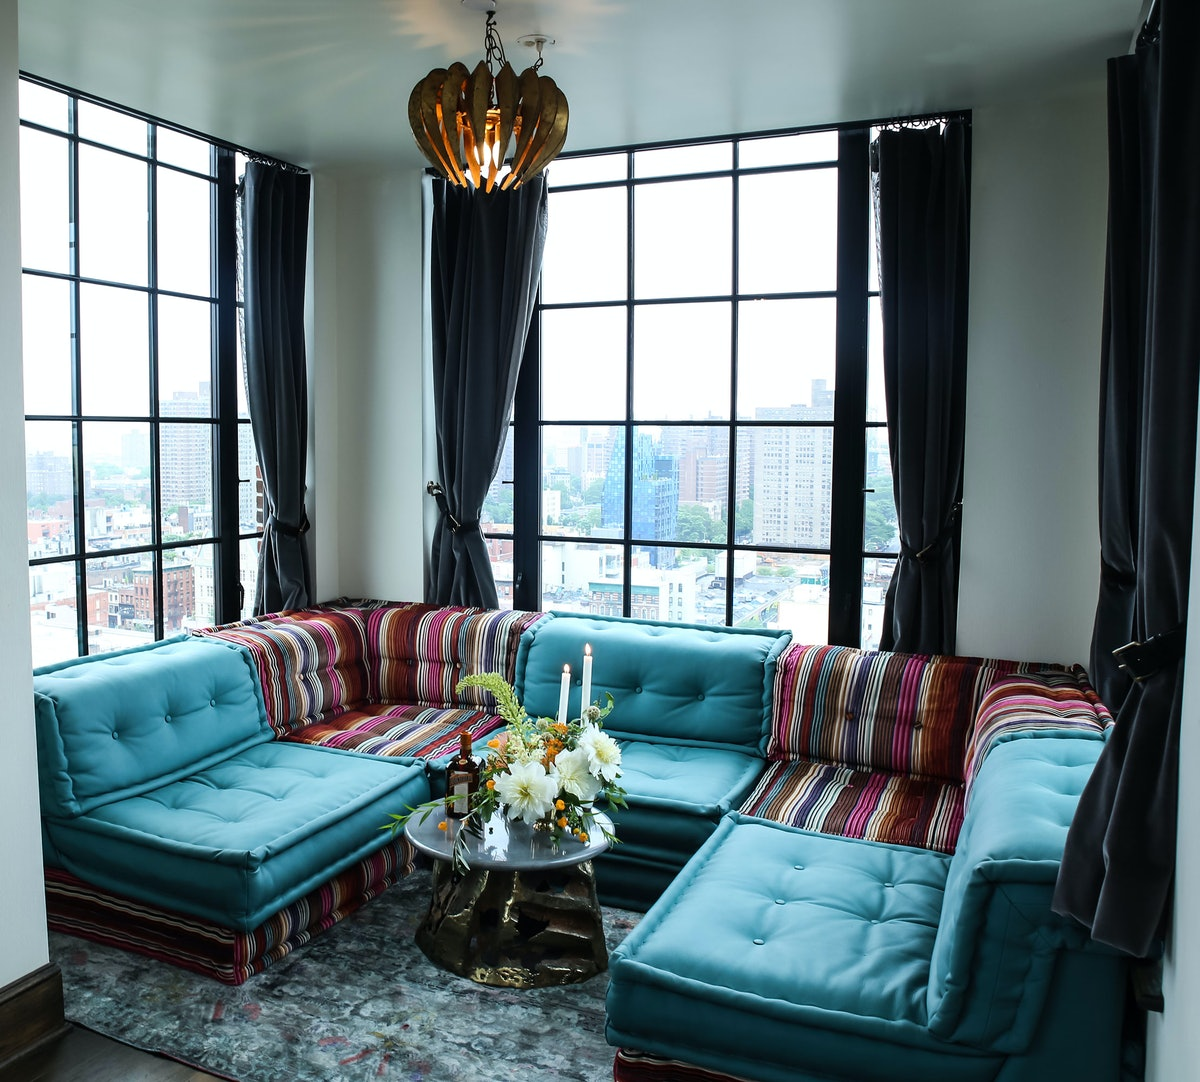 The Ludlow Penthouse